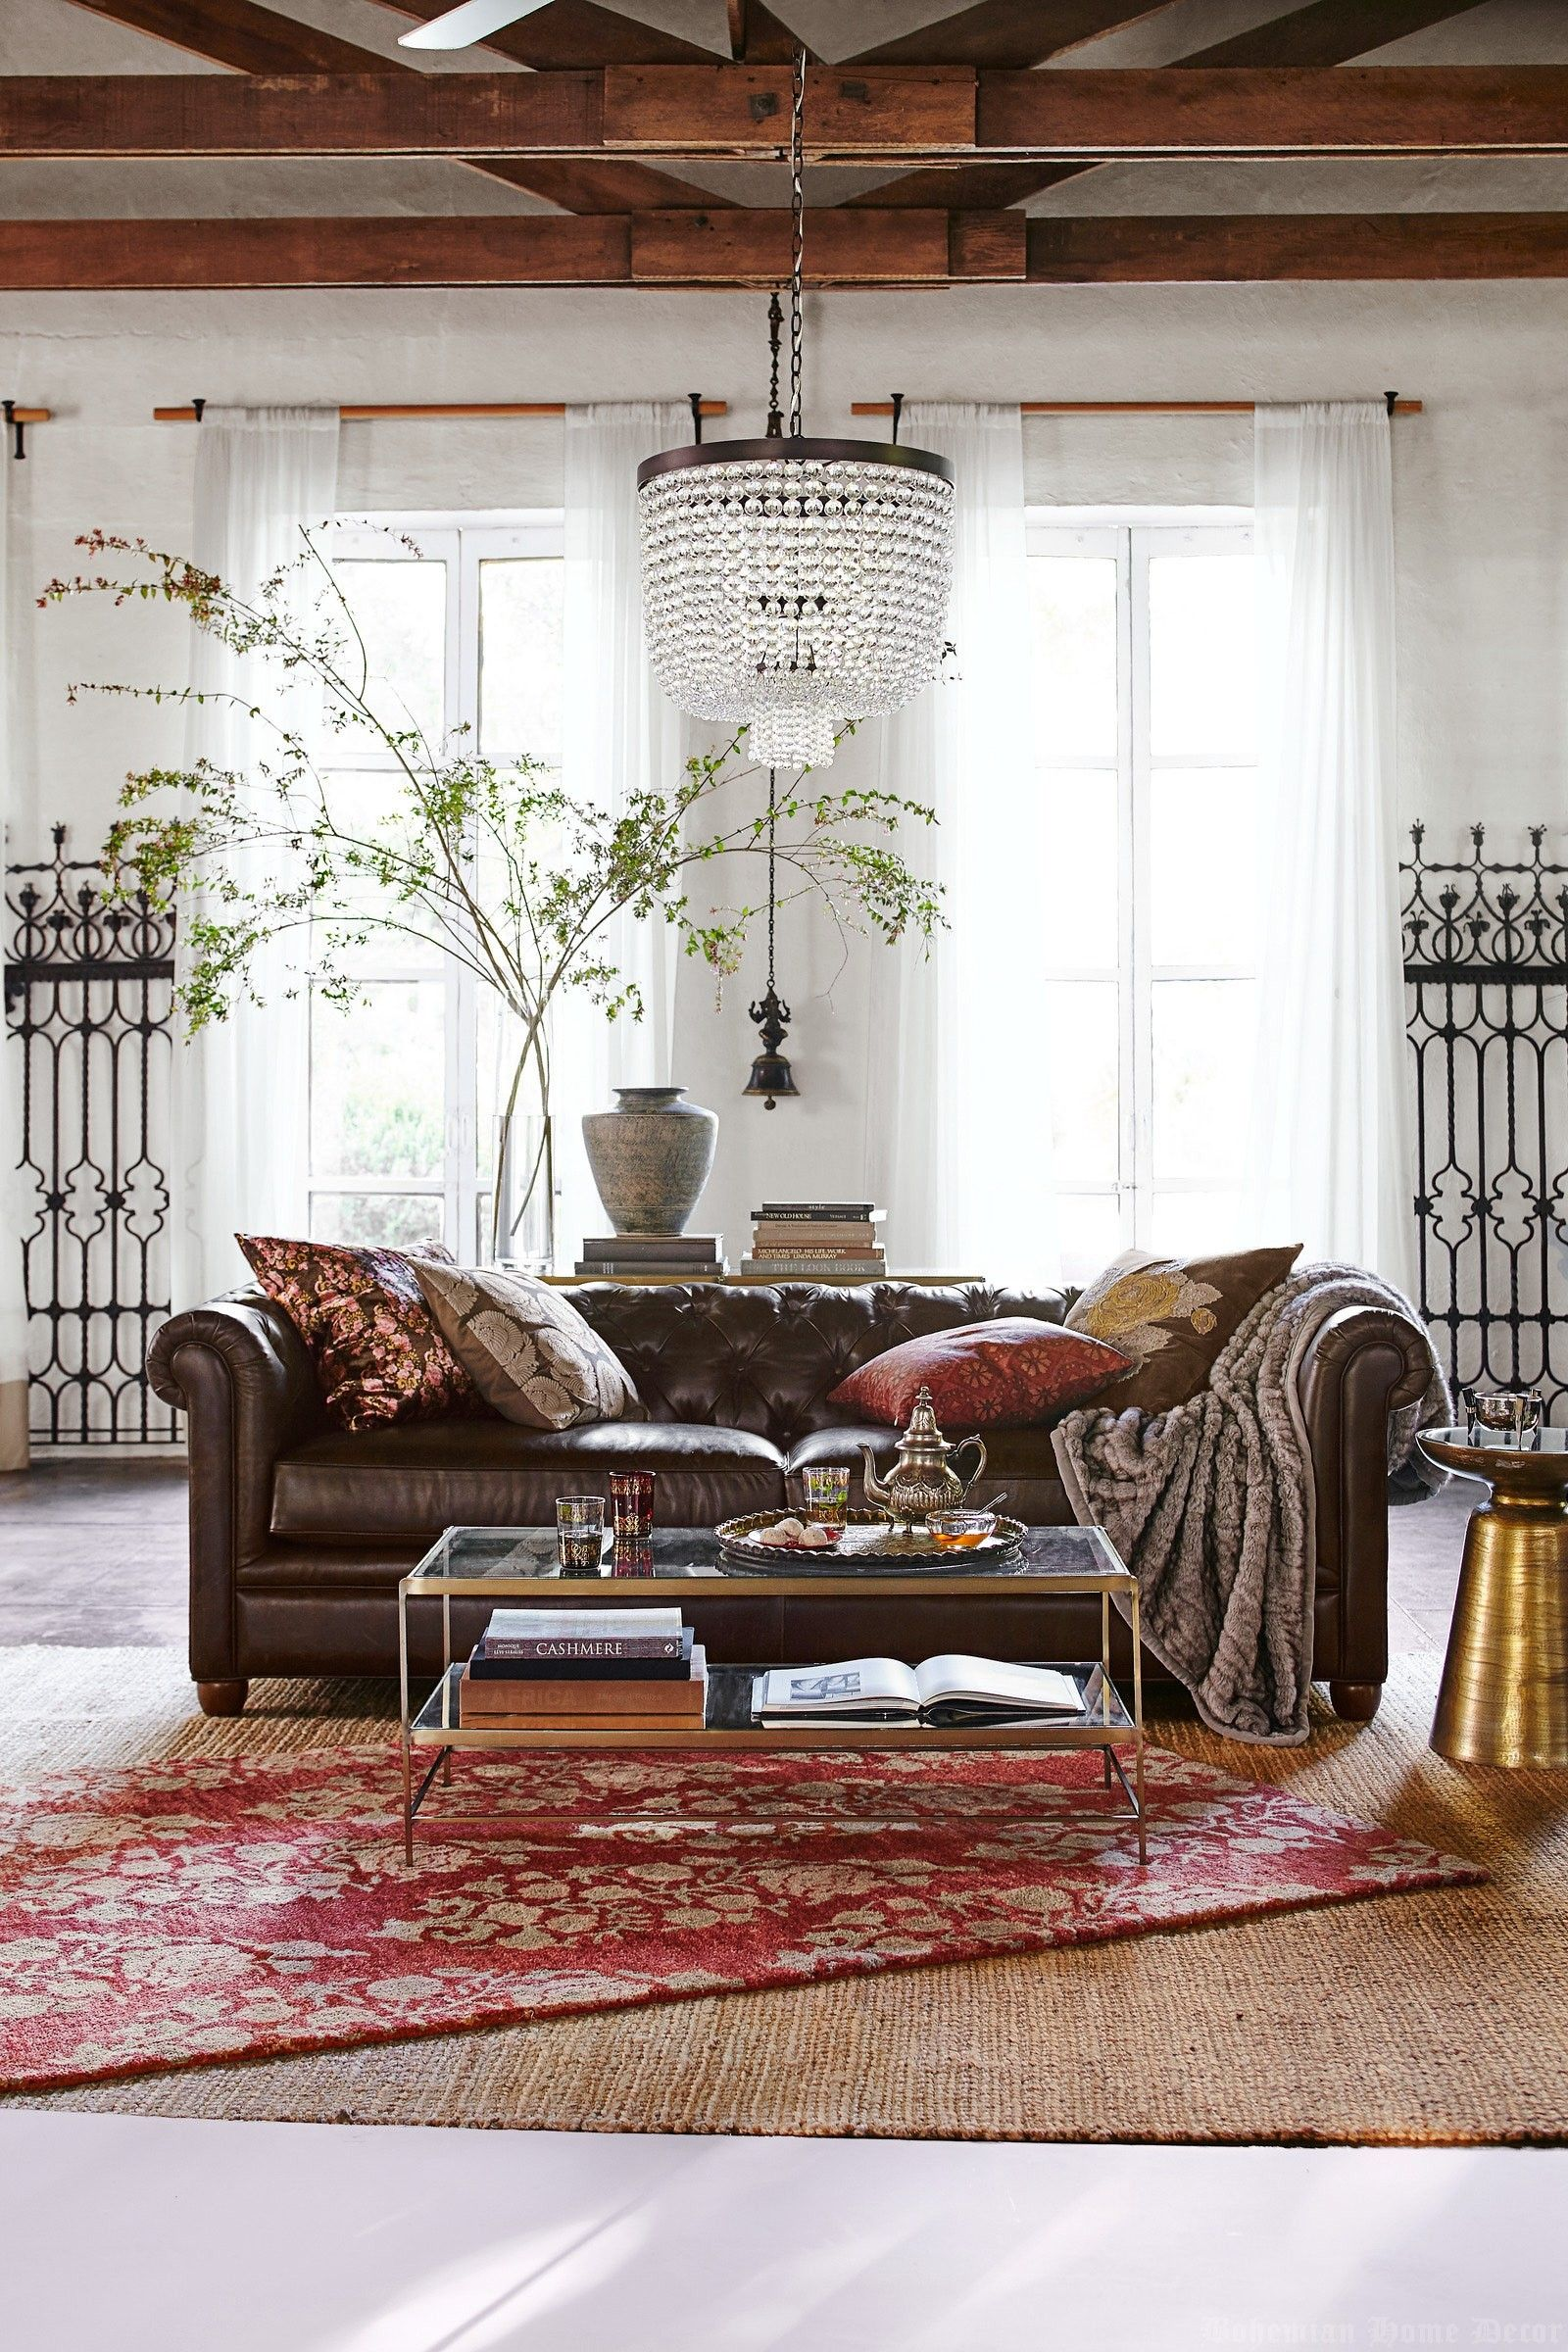 How To Deal With(A) Very Bad Bohemian Home Decor